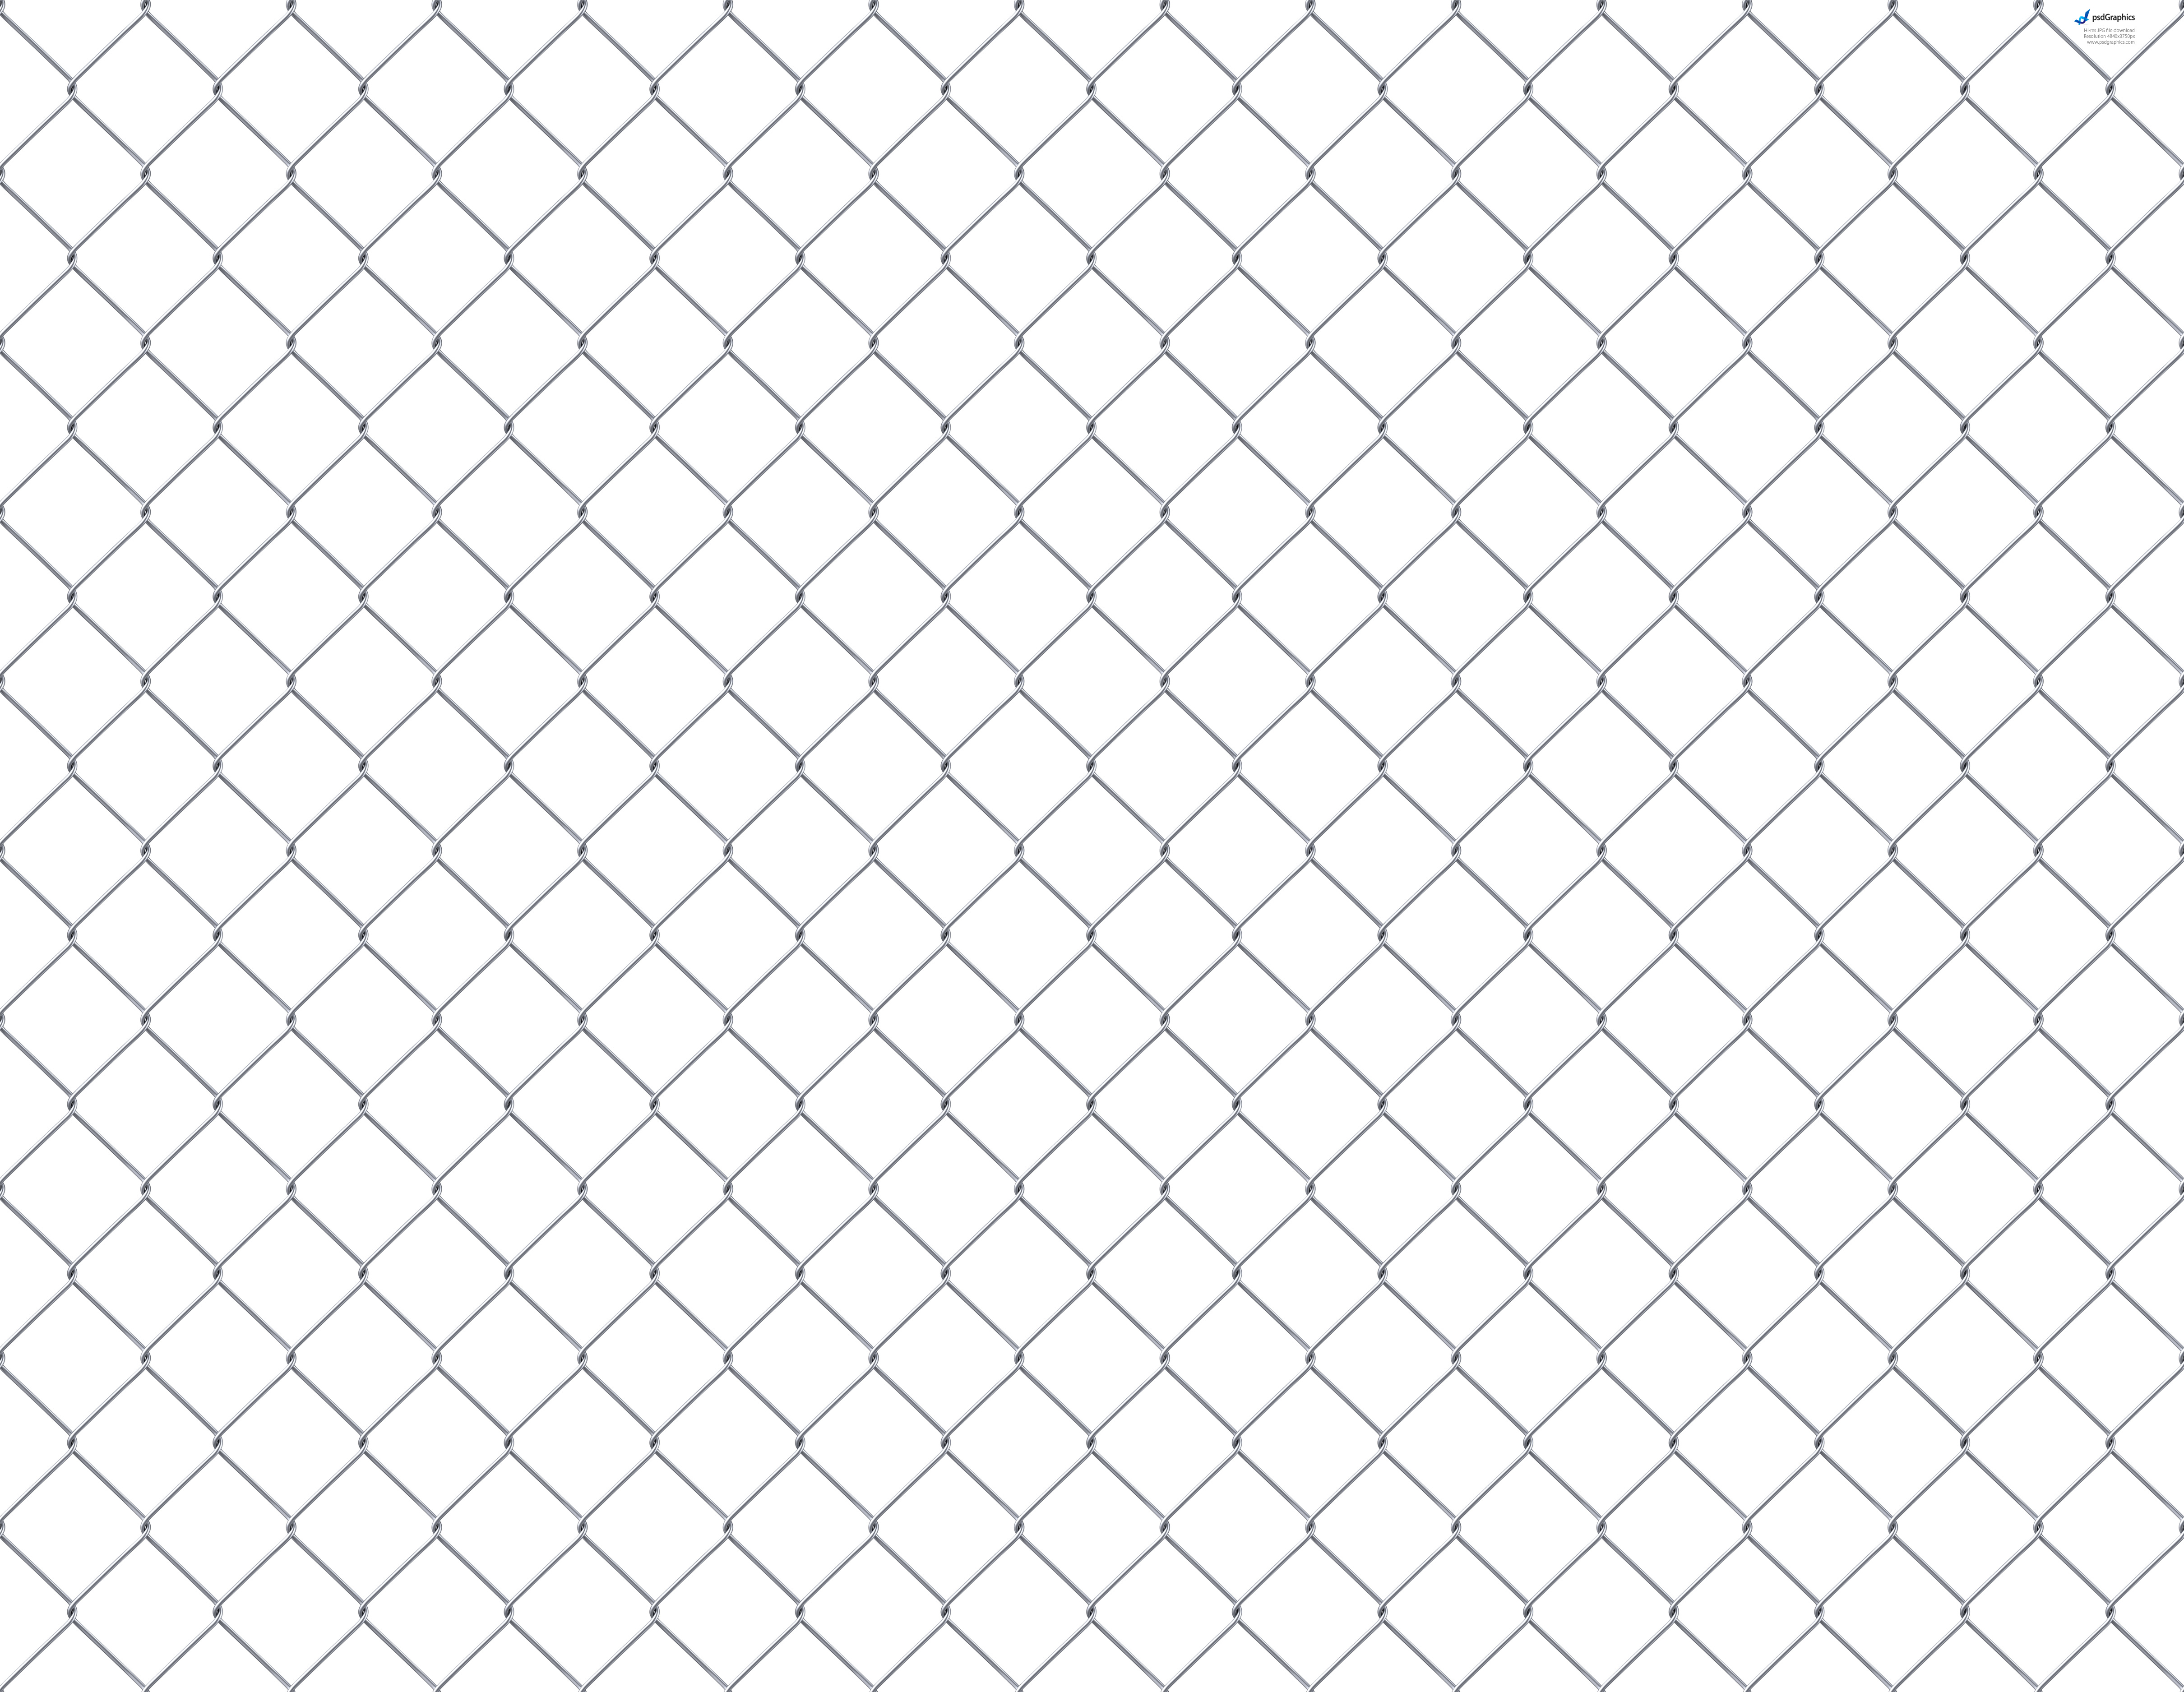 Chainlink fence - Fence PNG